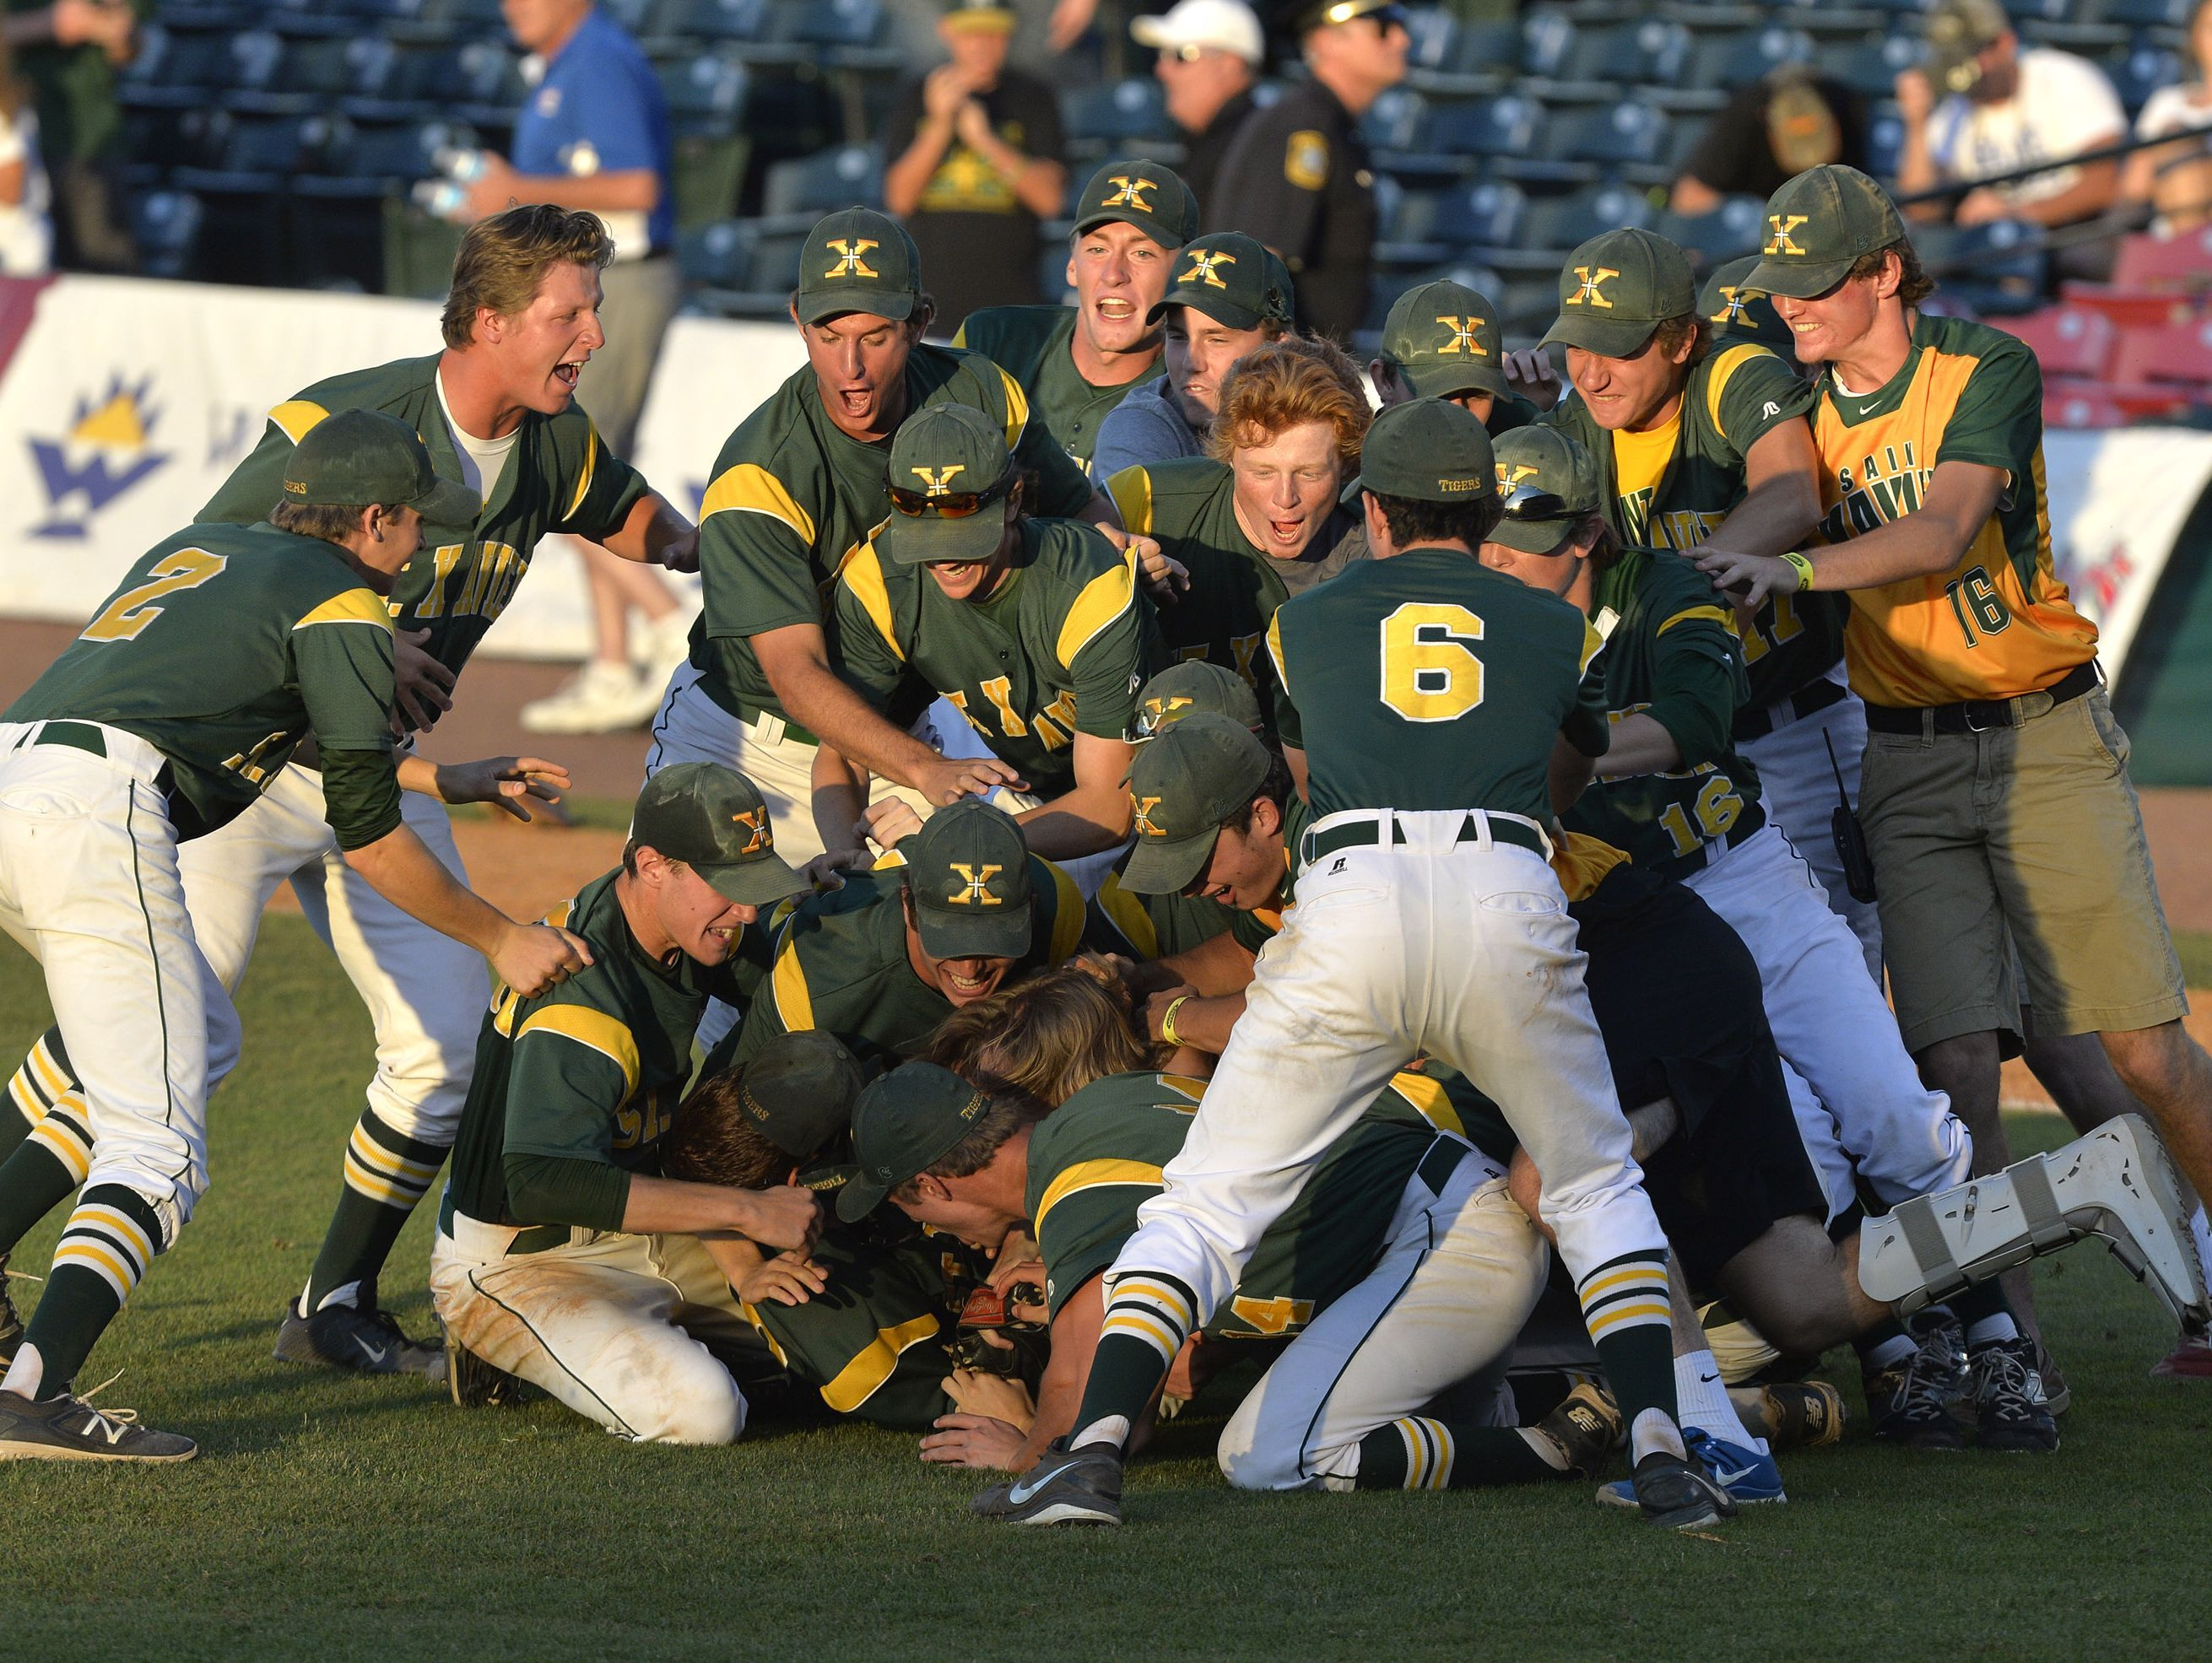 St. X baseball team ranked No. 1 in state